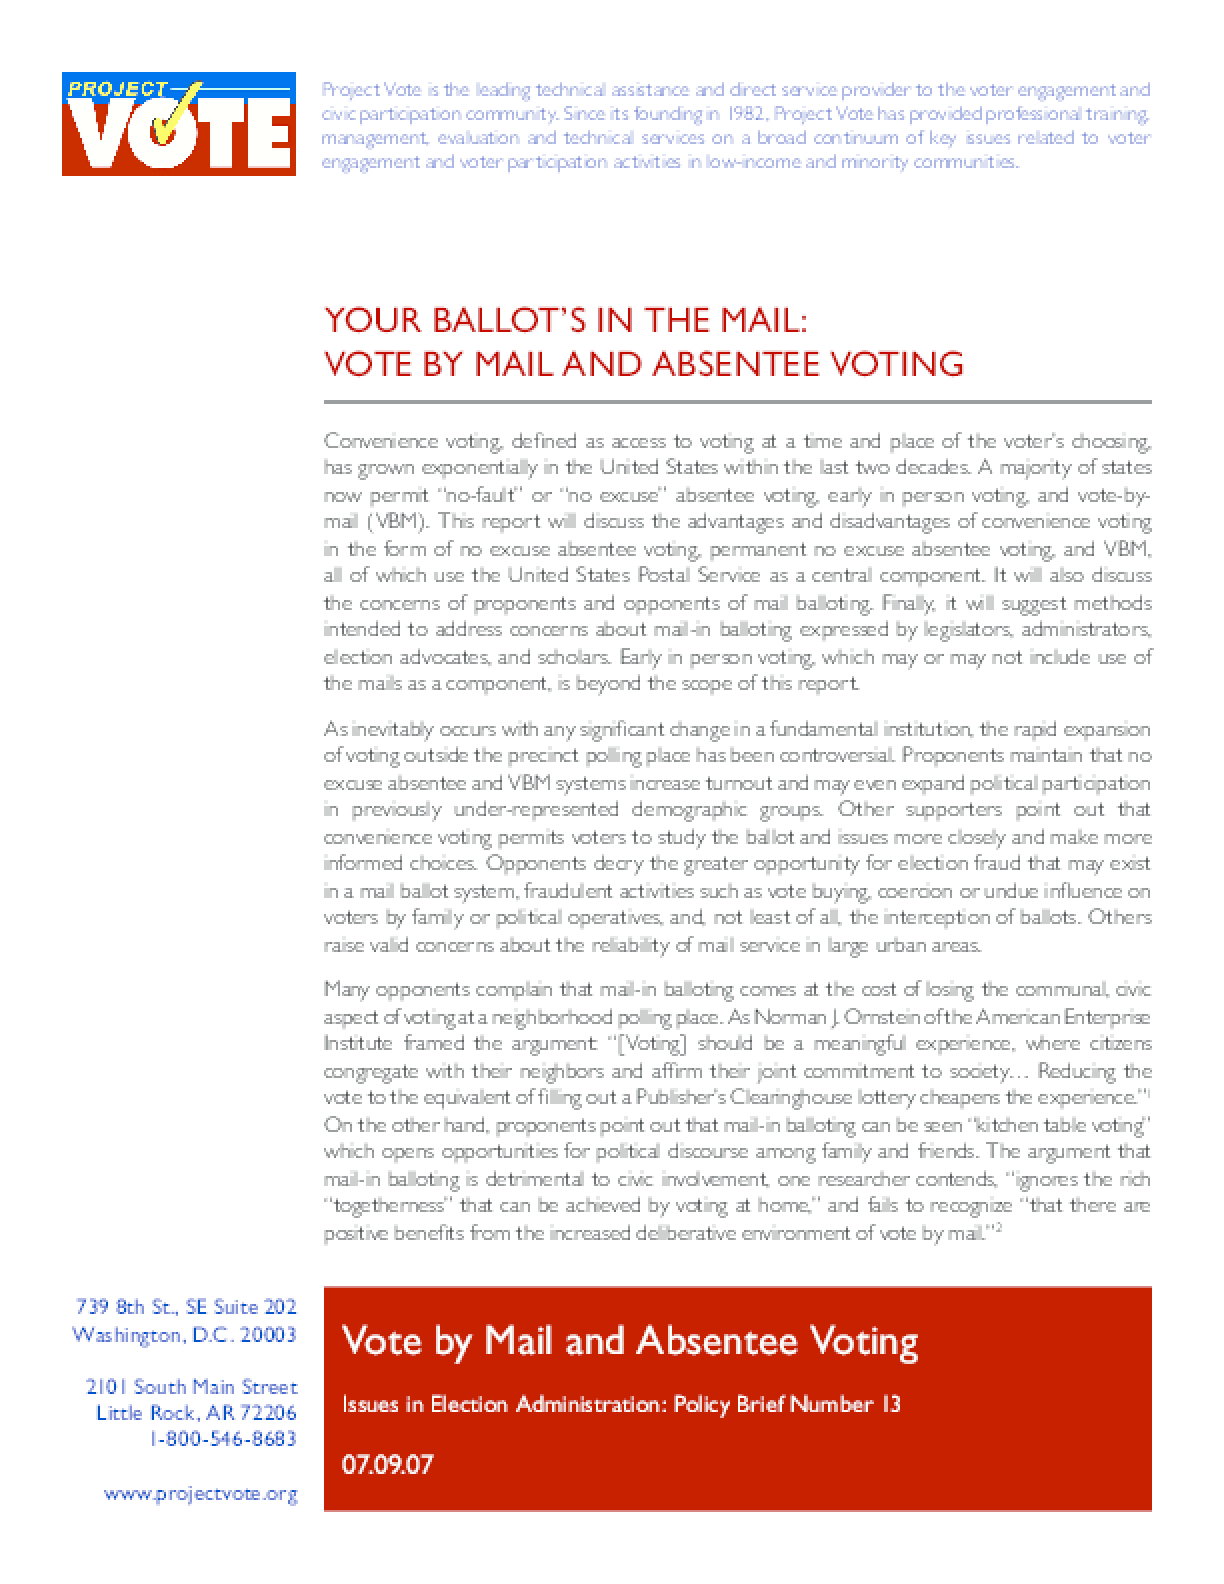 Your Ballot's In the Mail: Vote By Mail and Absentee Voting